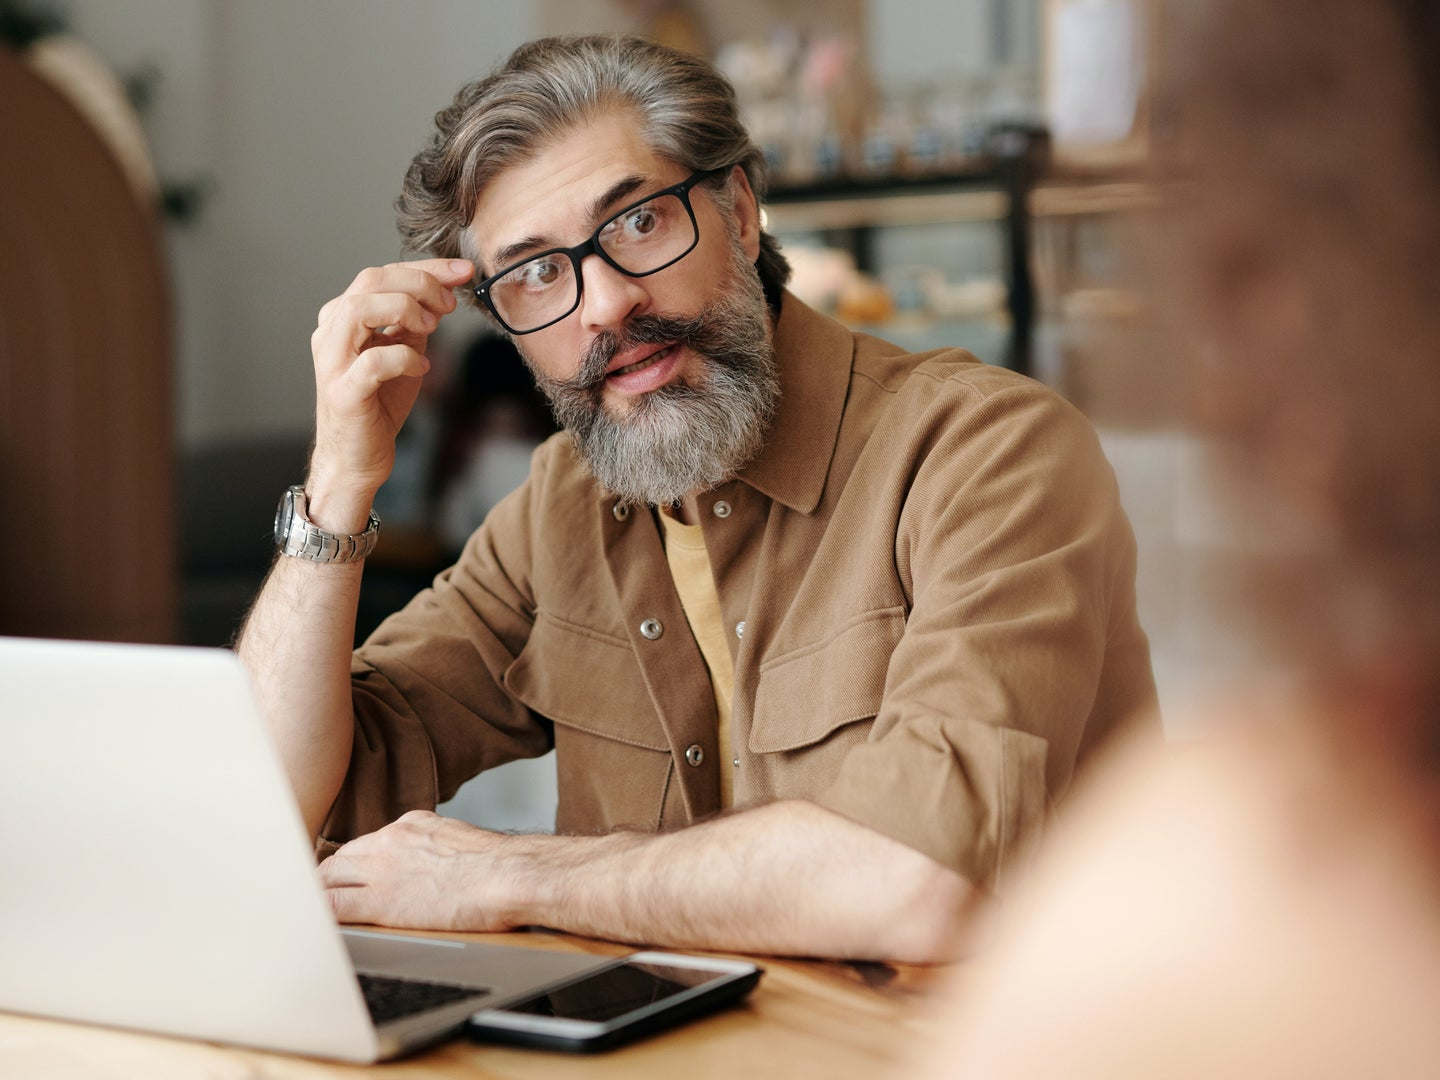 a bearded man with glasses looking stressed and confused while using a laptop computer